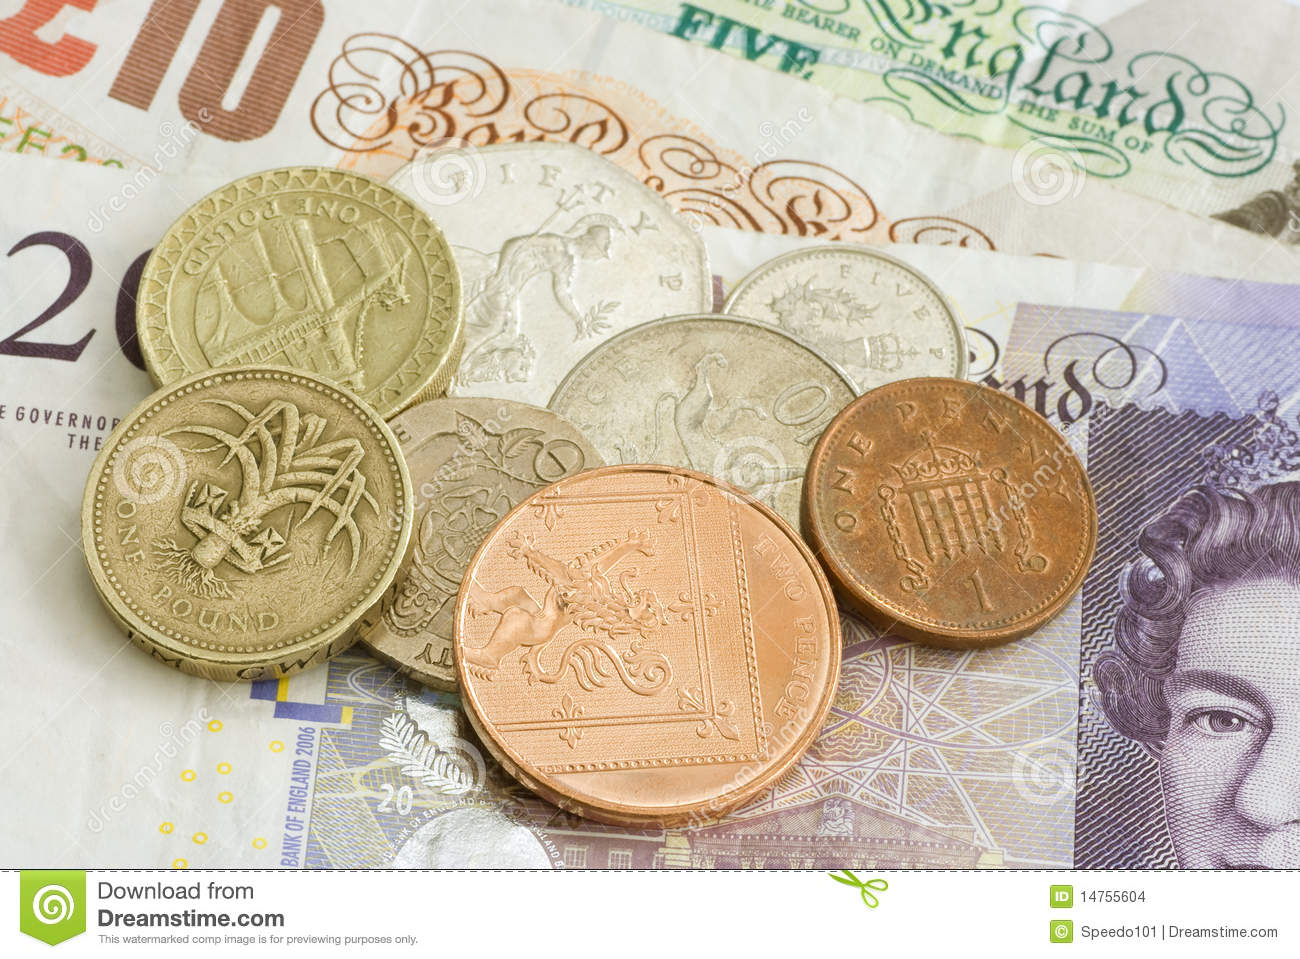 What does an english pound look like